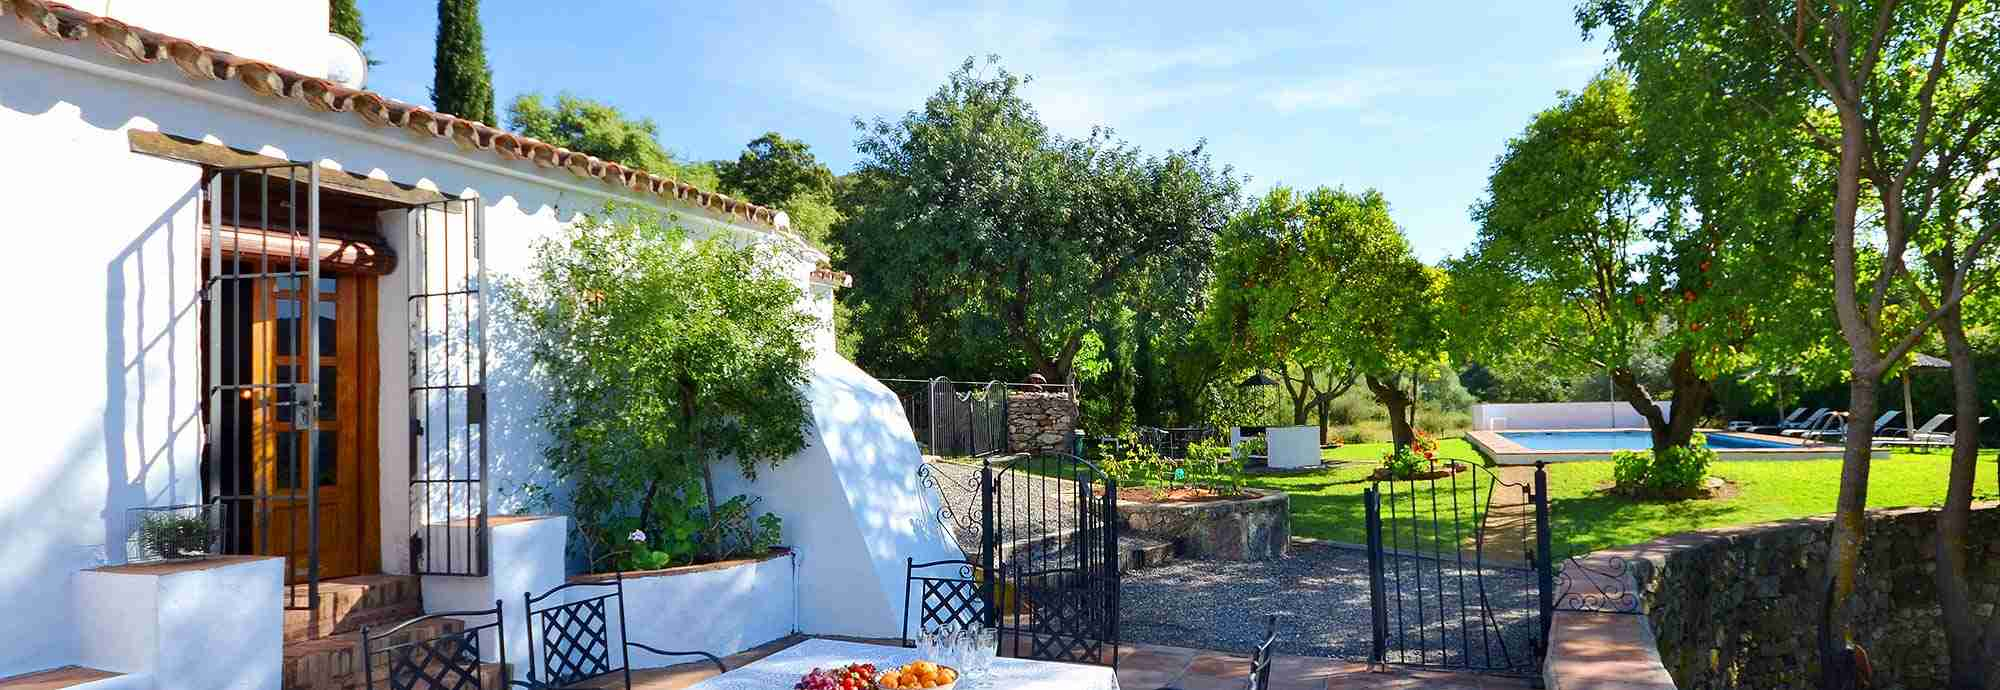 Andalucian villa with character in a very private country setting